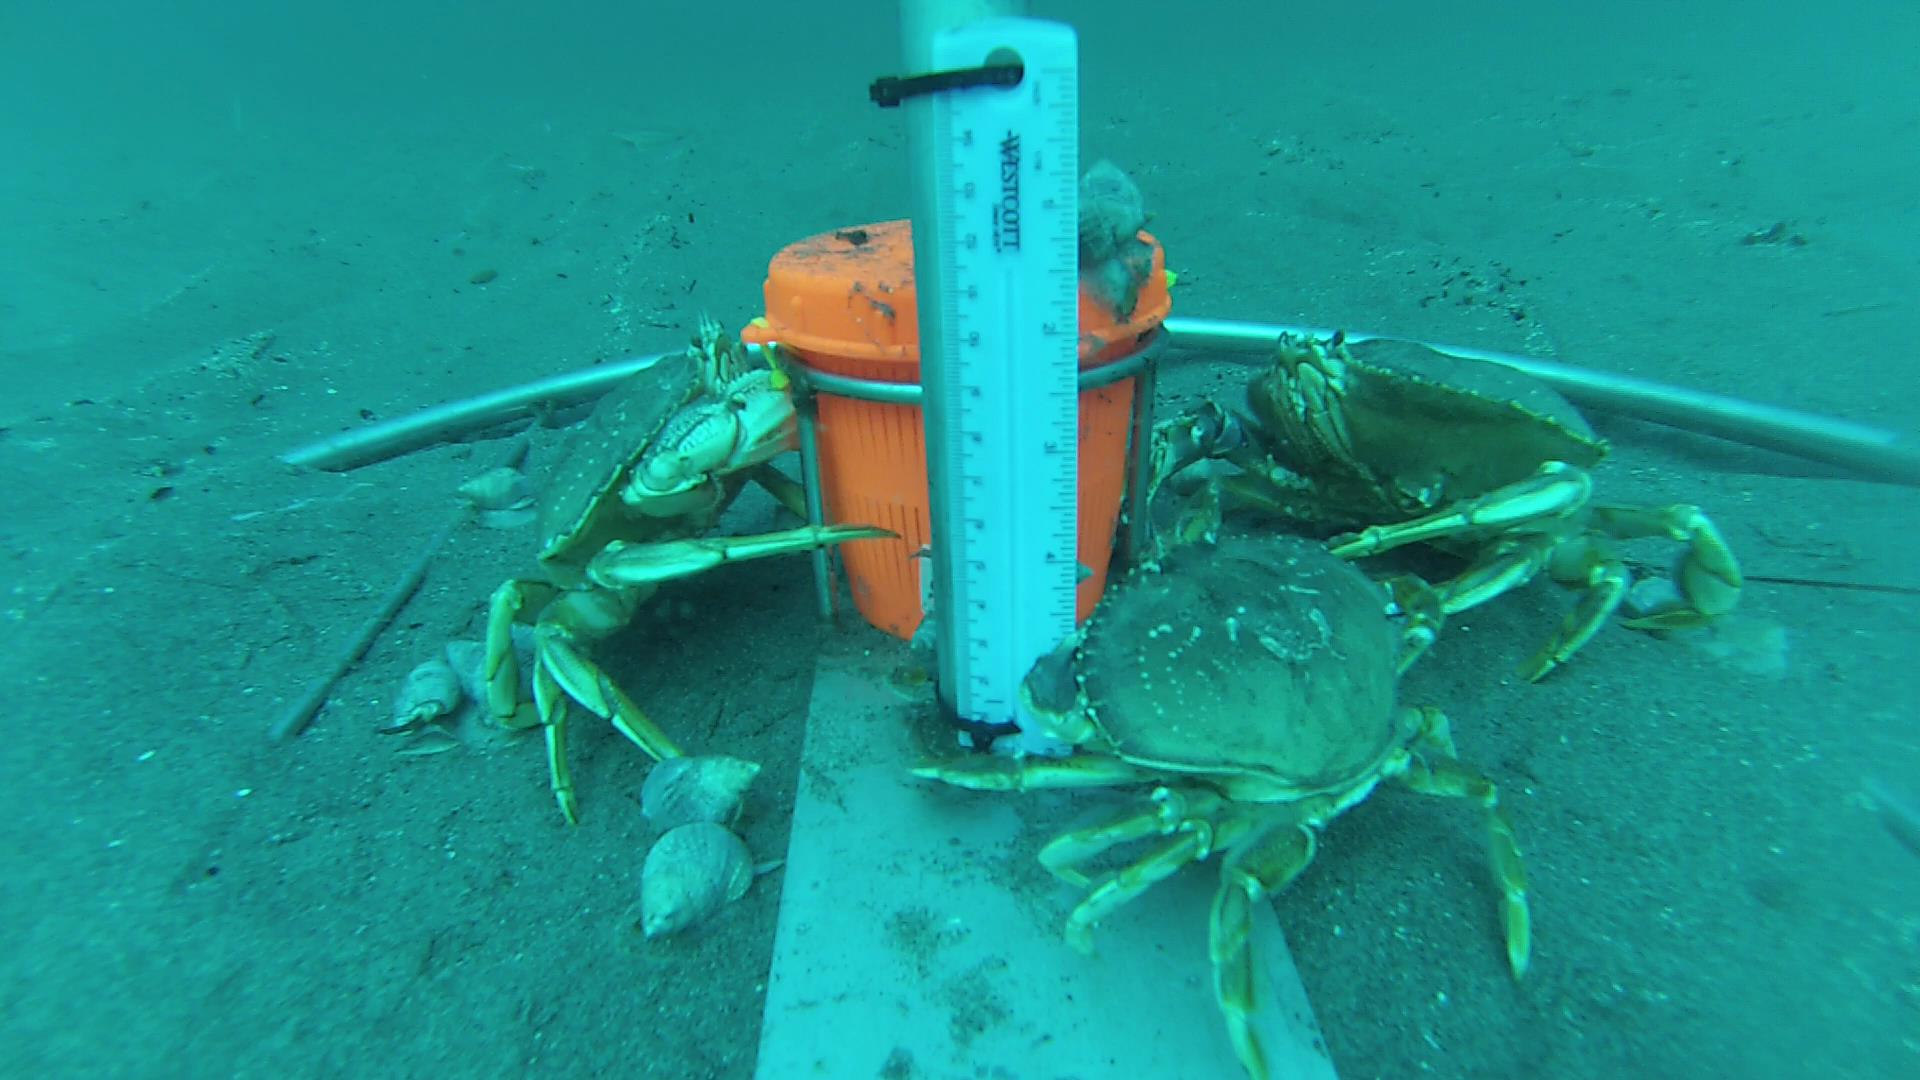 Dungeness crabs surrounding monitoring equipment